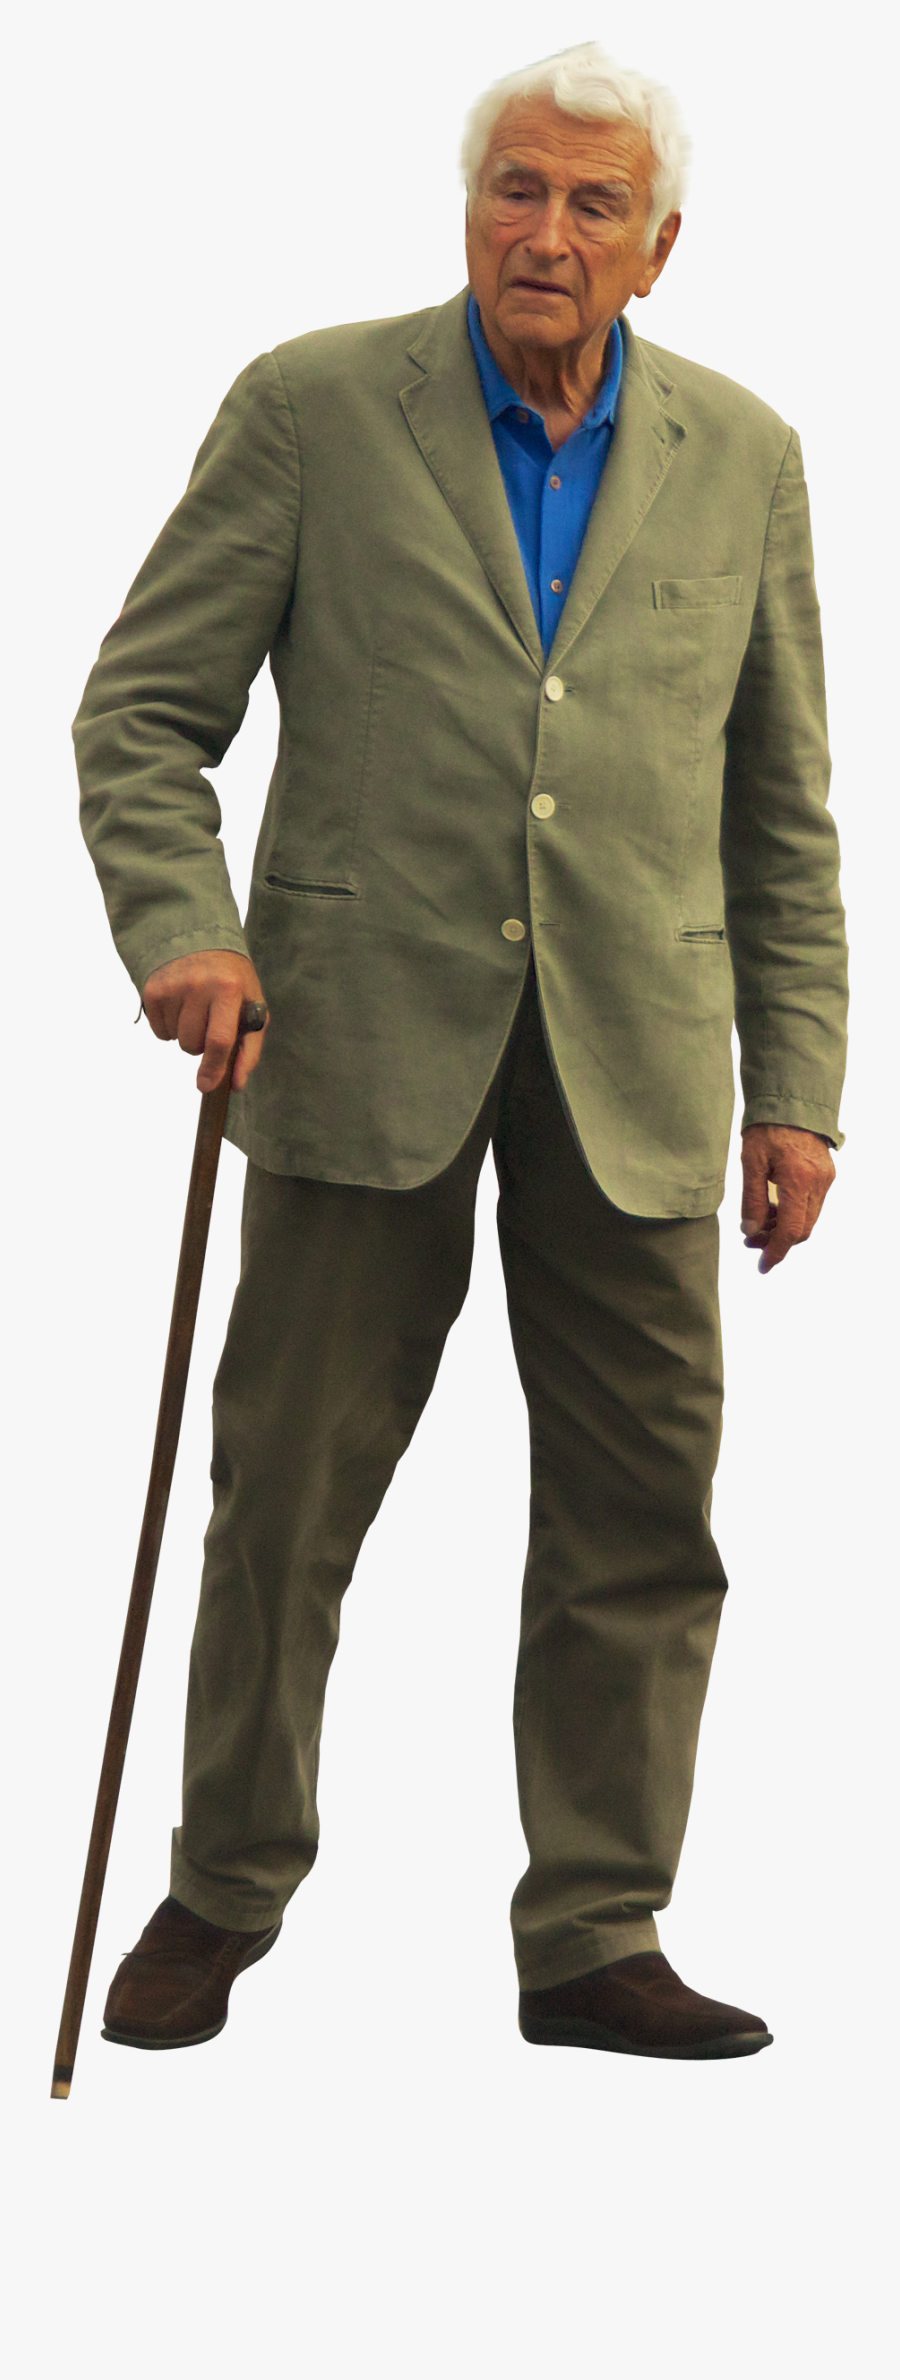 Old Man With Walking Stick Png, Transparent Clipart